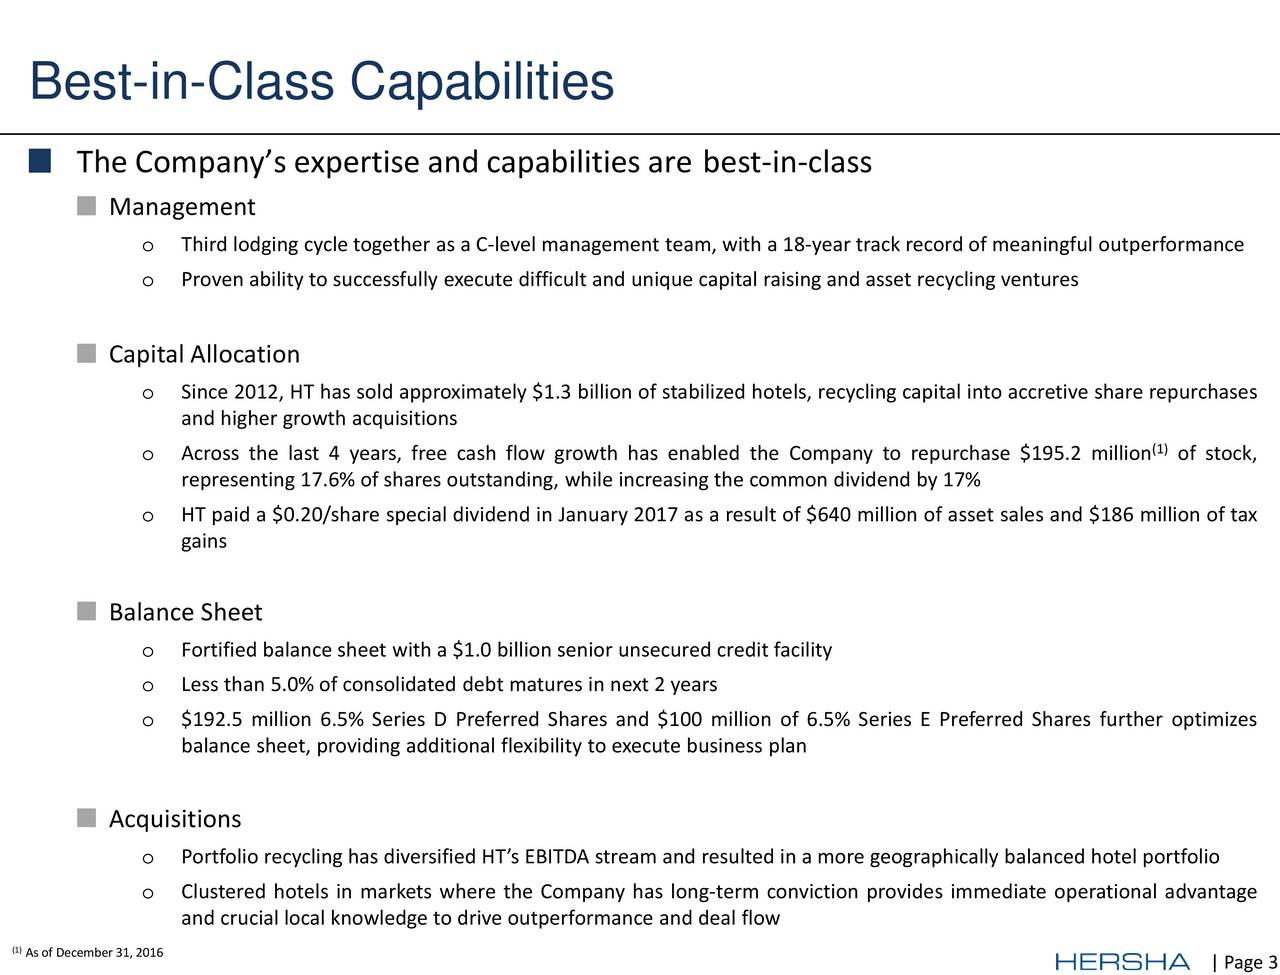 The Companys expertise and capabilities arebest-in-class Management o Third lodging cycle together as a C-level management team, with a 18-year track record of meaningful outperformance o Proven ability to successfully execute difficult and unique capital raising and asset recycling ventures Capital Allocation o Since 2012, HT has sold approximately $1.3 billion of stabilized hotels, recycling capital into accretive share repurchases and higher growth acquisitions o Across the last 4 years, free cash flow growth has enabled the Company to repurchase $195.2 million stock, representing 17.6% of shares outstanding, while increasing the common dividend by 17% o HT paid a $0.20/share special dividend in January 2017 as a result of $640 million of asset sales and $186 million of tax gains Balance Sheet o Fortified balance sheet with a $1.0 billion senior unsecured credit facility o Less than 5.0% of consolidated debt matures in next 2 years o $192.5 million 6.5% Series D Preferred Shares and $100 million of 6.5% Series E Preferred Shares further optimizes balance sheet, providing additional flexibility to execute business plan Acquisitions o Portfolio recycling has diversified HTsEBITDA stream and resulted in a more geographically balanced hotel portfolio o Clustered hotels in markets where the Company has long-term conviction provides immediate operational advantage and crucial local knowledge to drive outperformance and deal flow (As of December 31, 2016